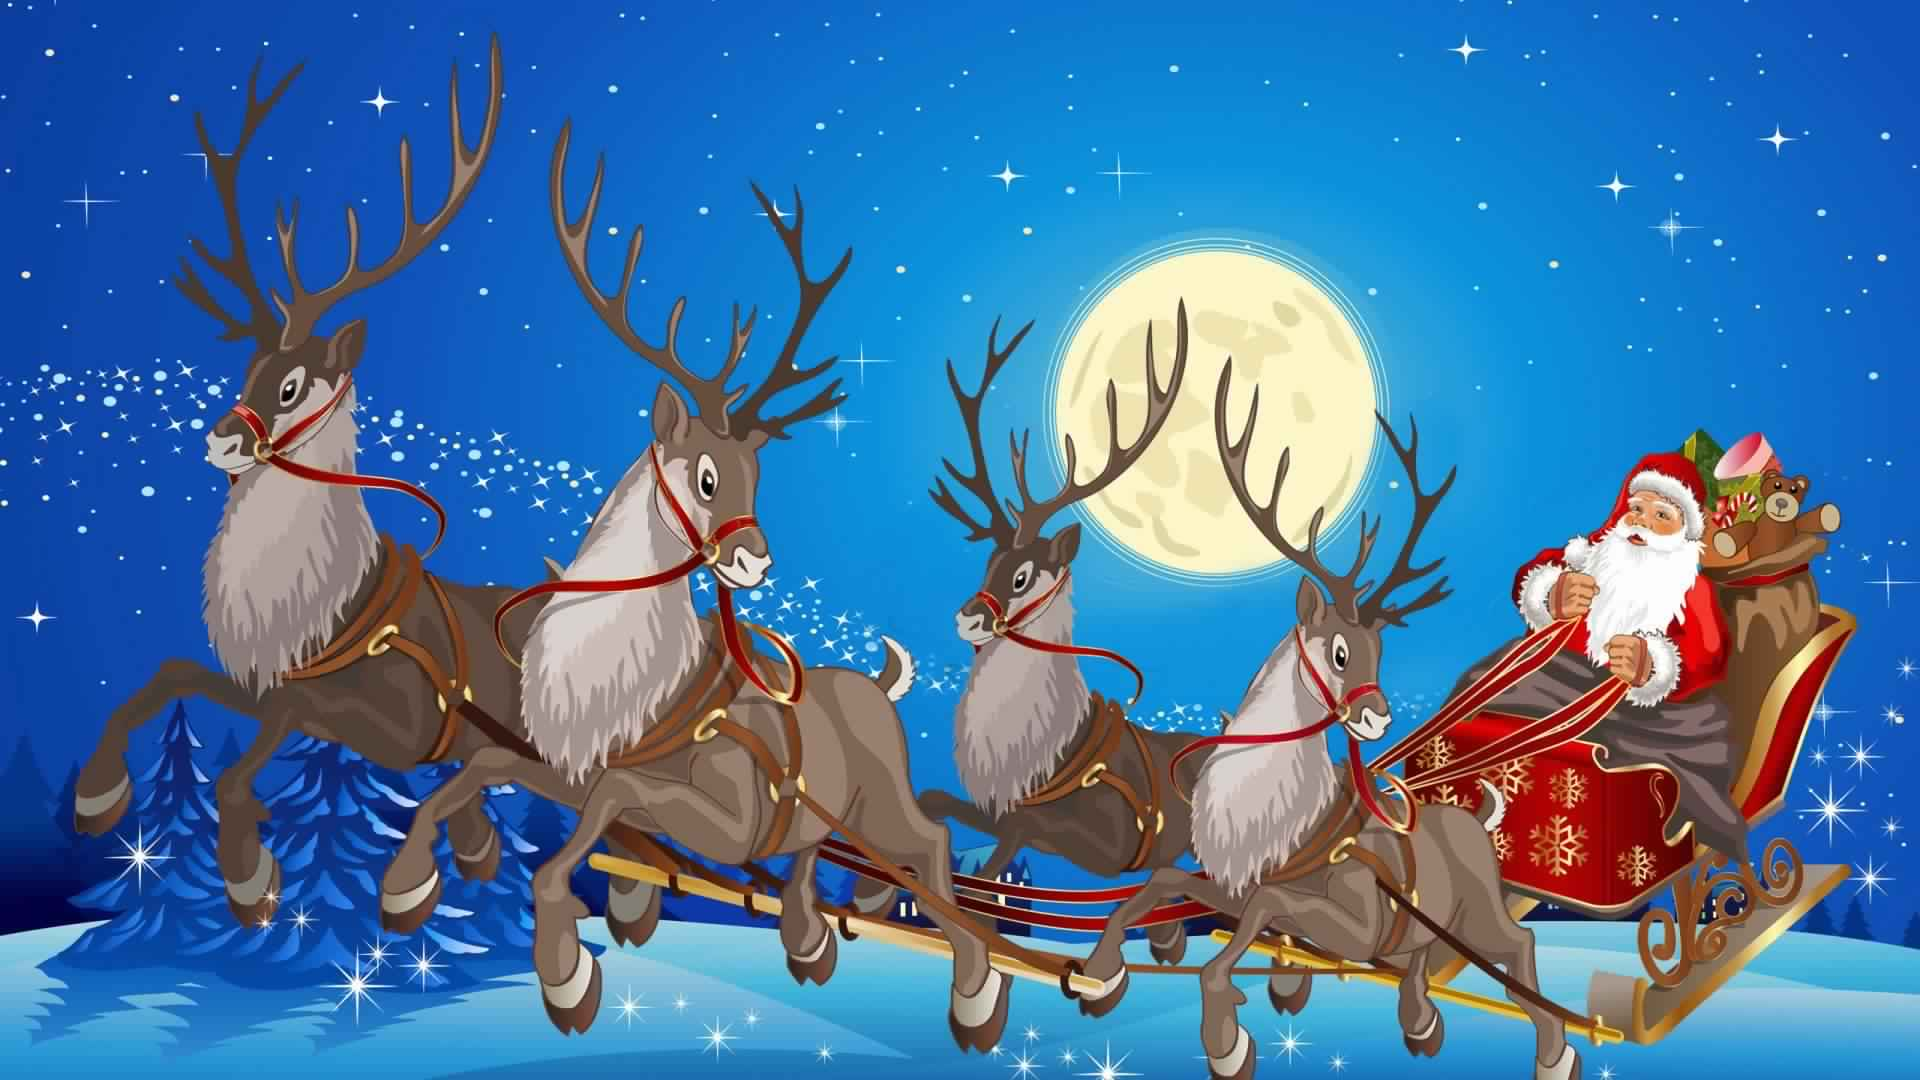 Santa Claus Hd Wallpaper Free Download For Desktop